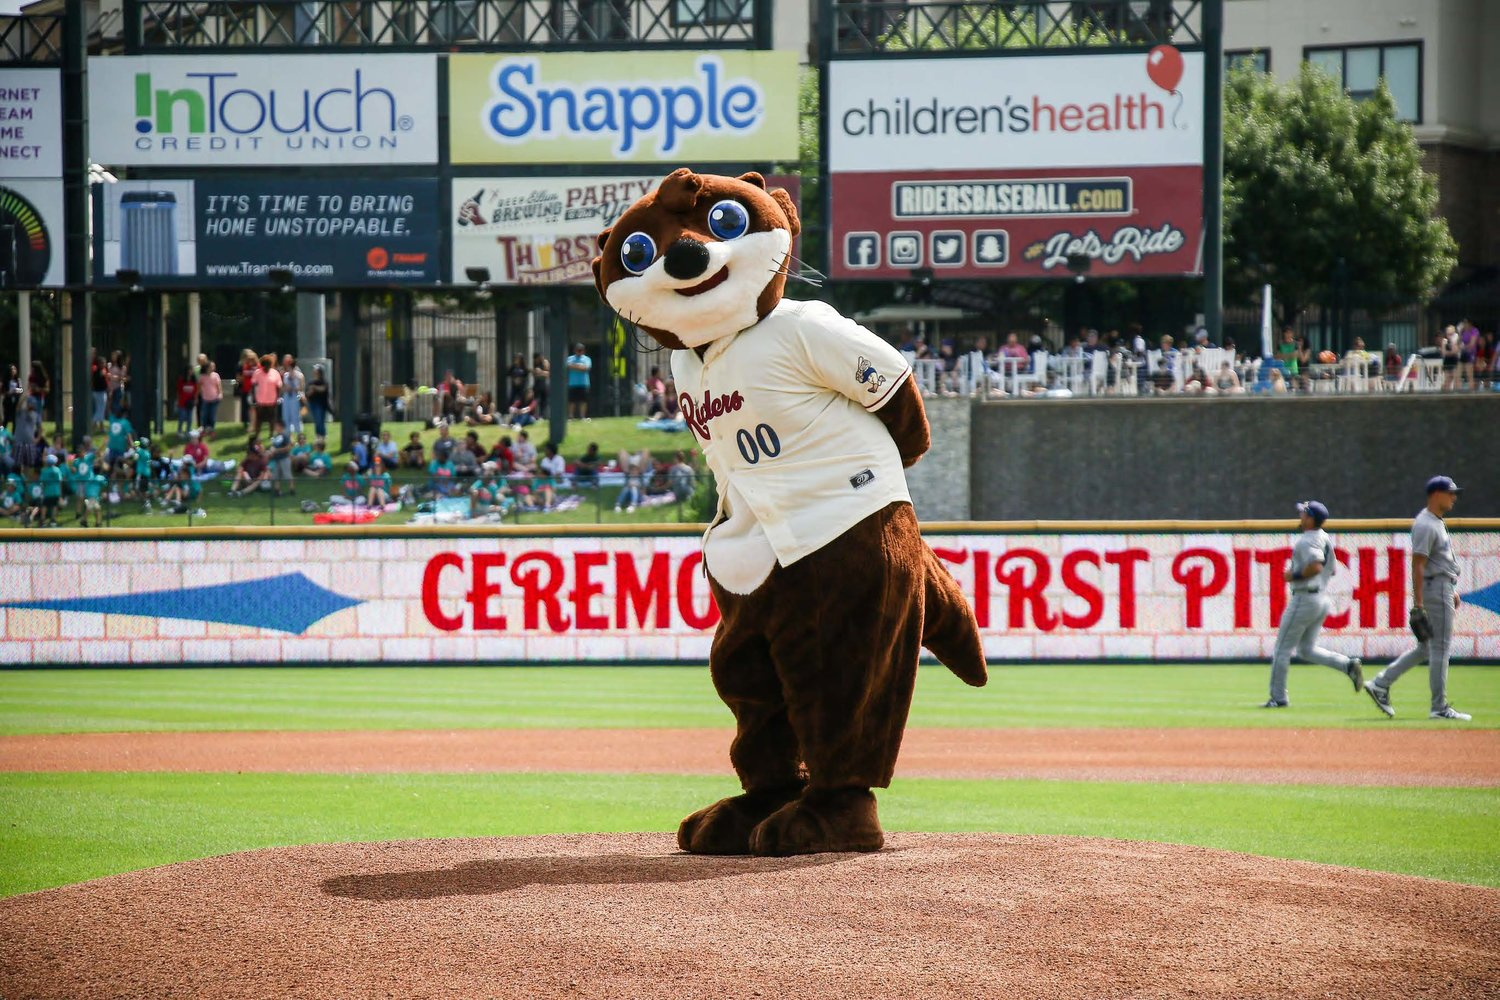 Otis the Otter throwing out the first pitch